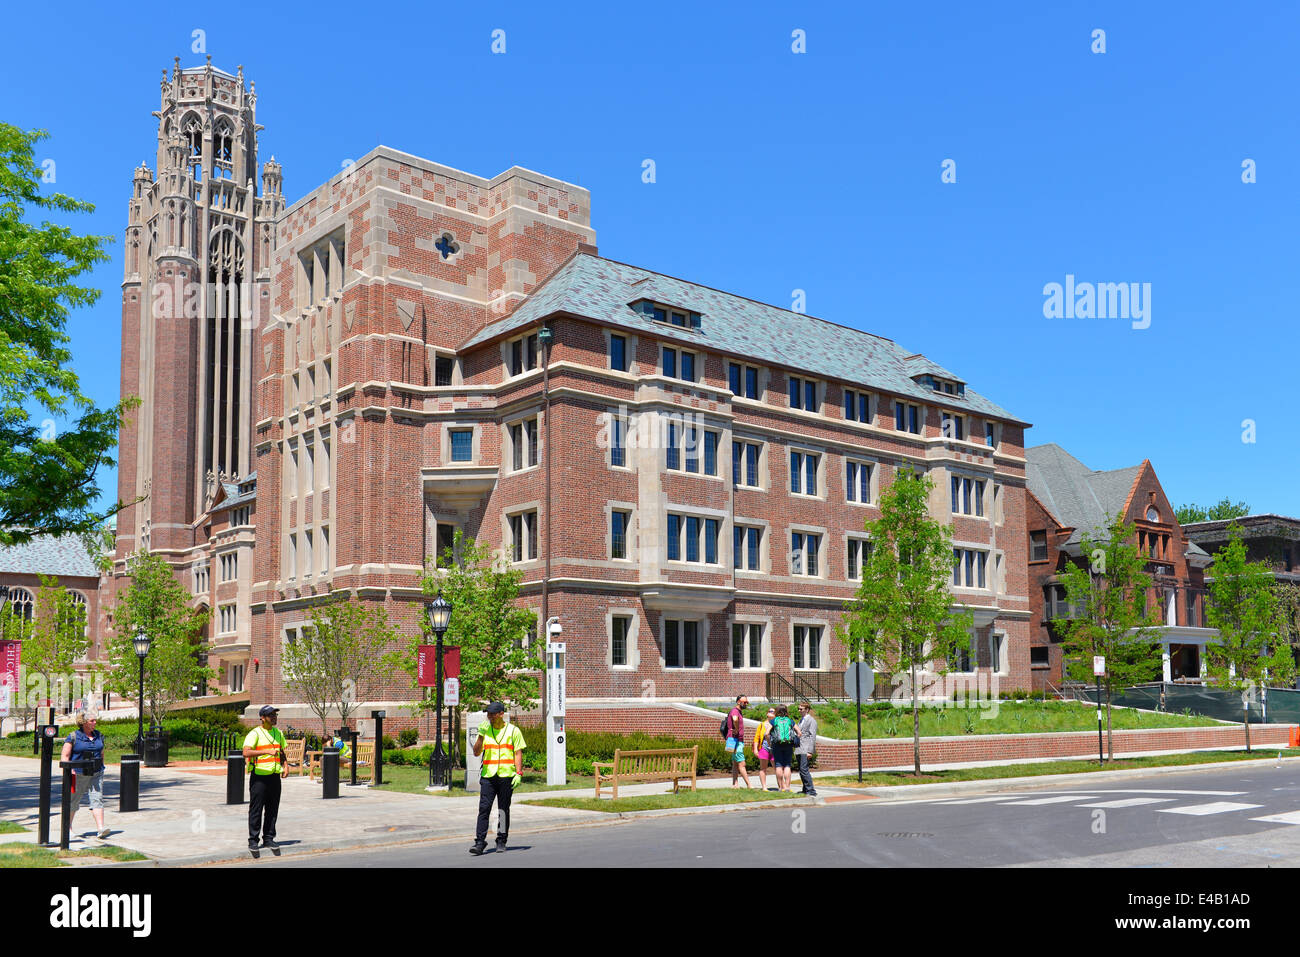 University of Chicago, Illinois - Stock Image